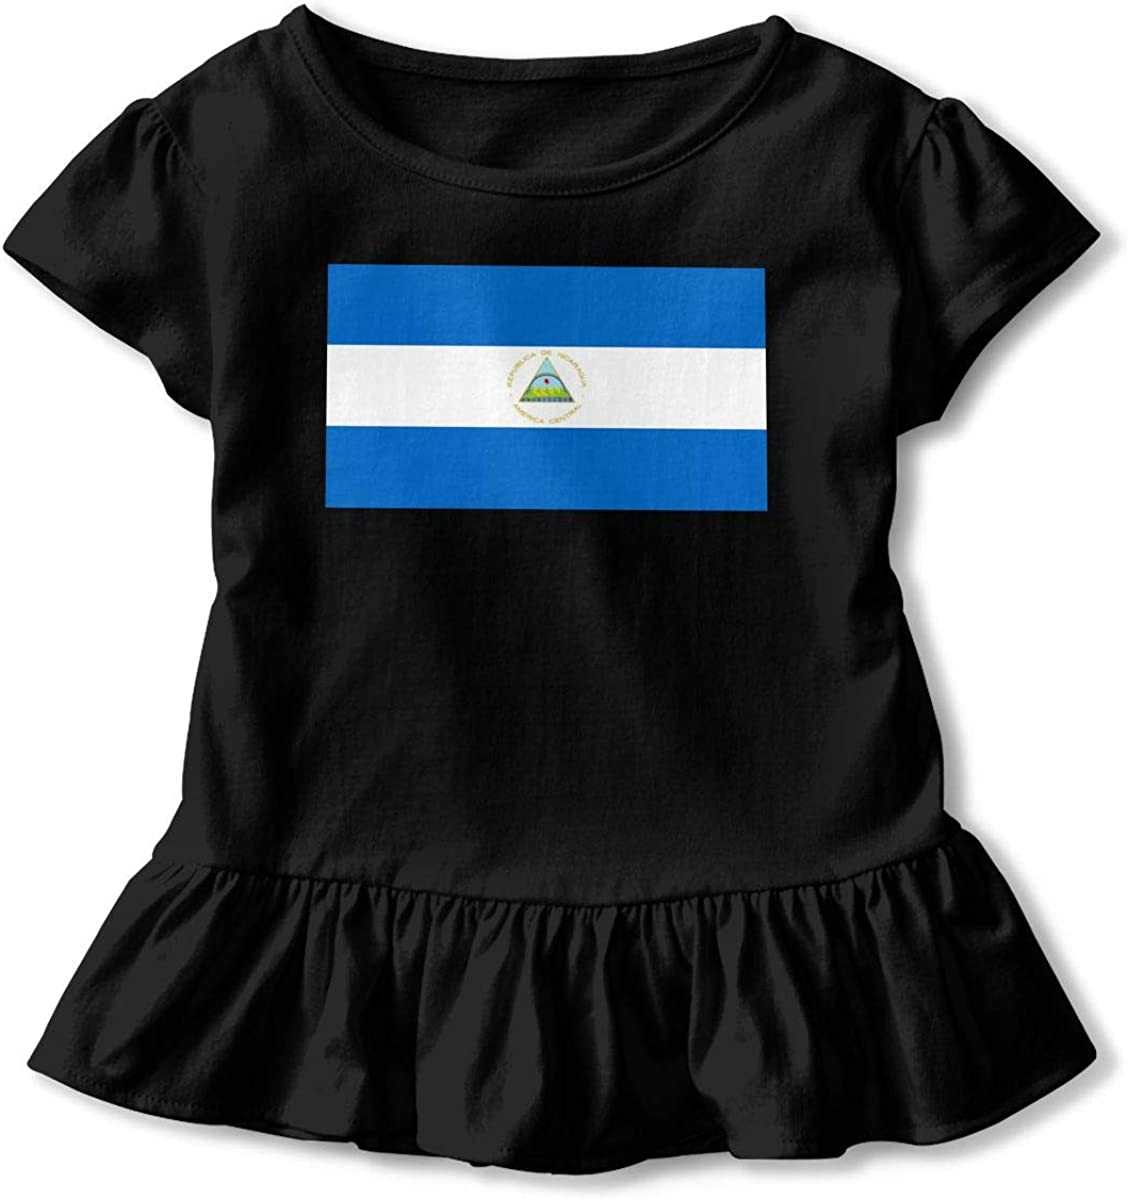 Nicaragua Flag Baby Girl Short Sleeve T-Shirt Flounced Cotton Outfits for 2-6 Years Old Baby